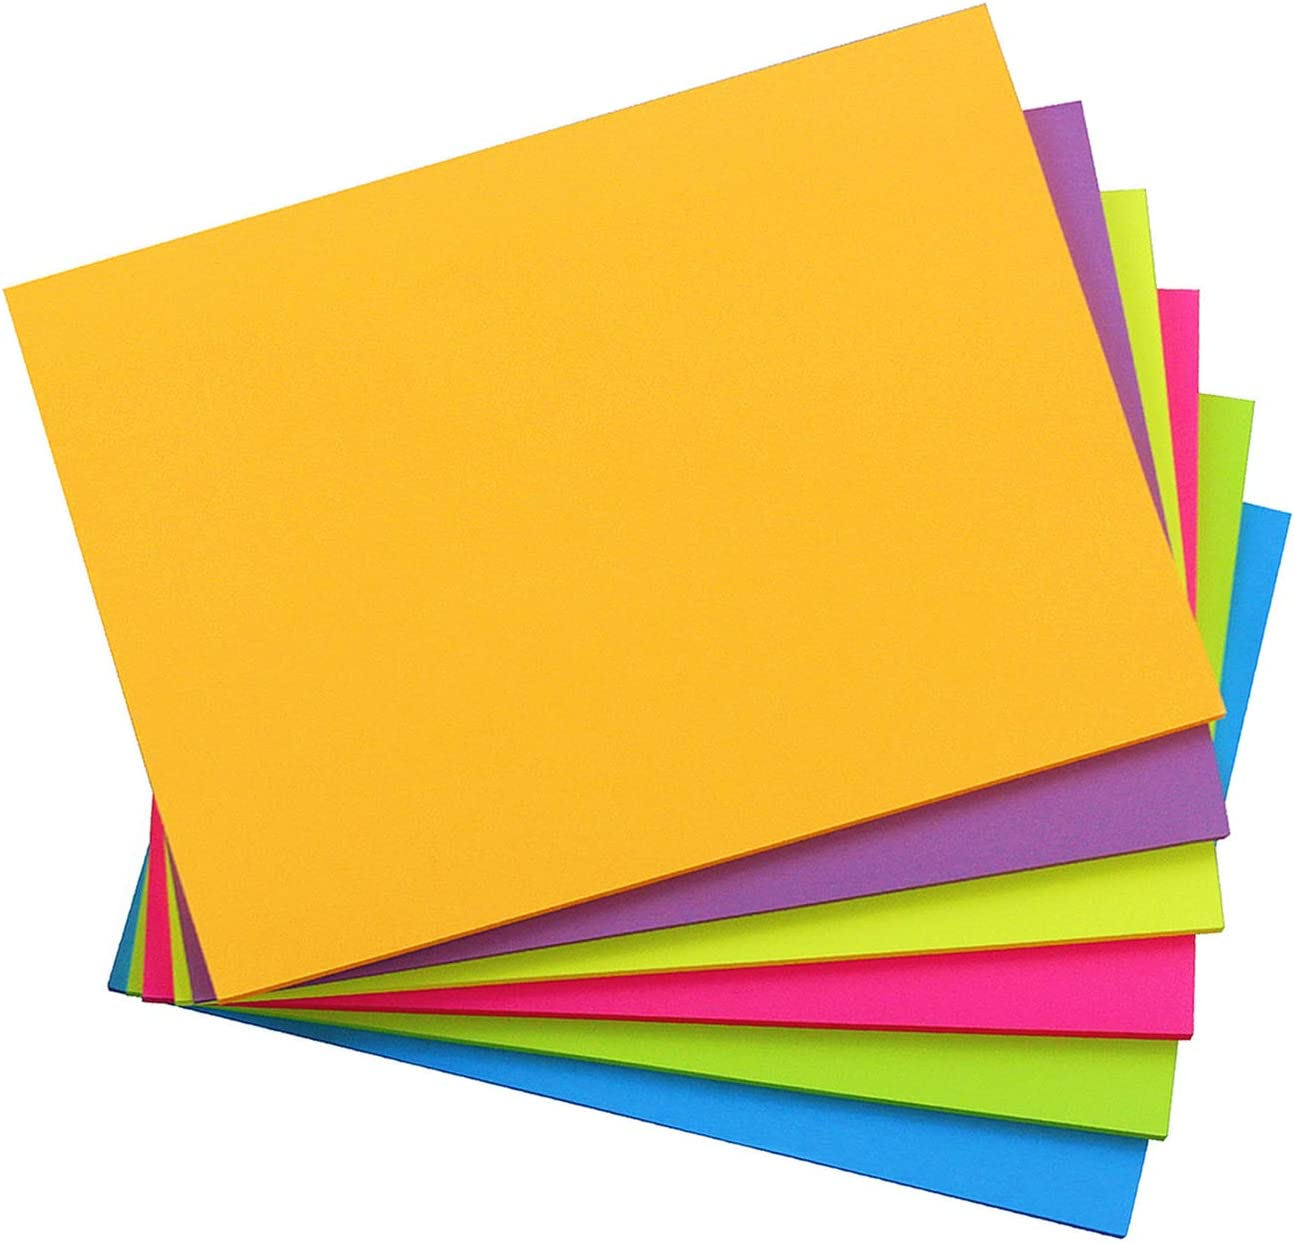 Sticky Notes 8x6, 6 Color Bright Colorful Sticky Pad, 6 Pads/Pack, 45 Sheets/Pad, Self-Sticky Note Pads : Office Products